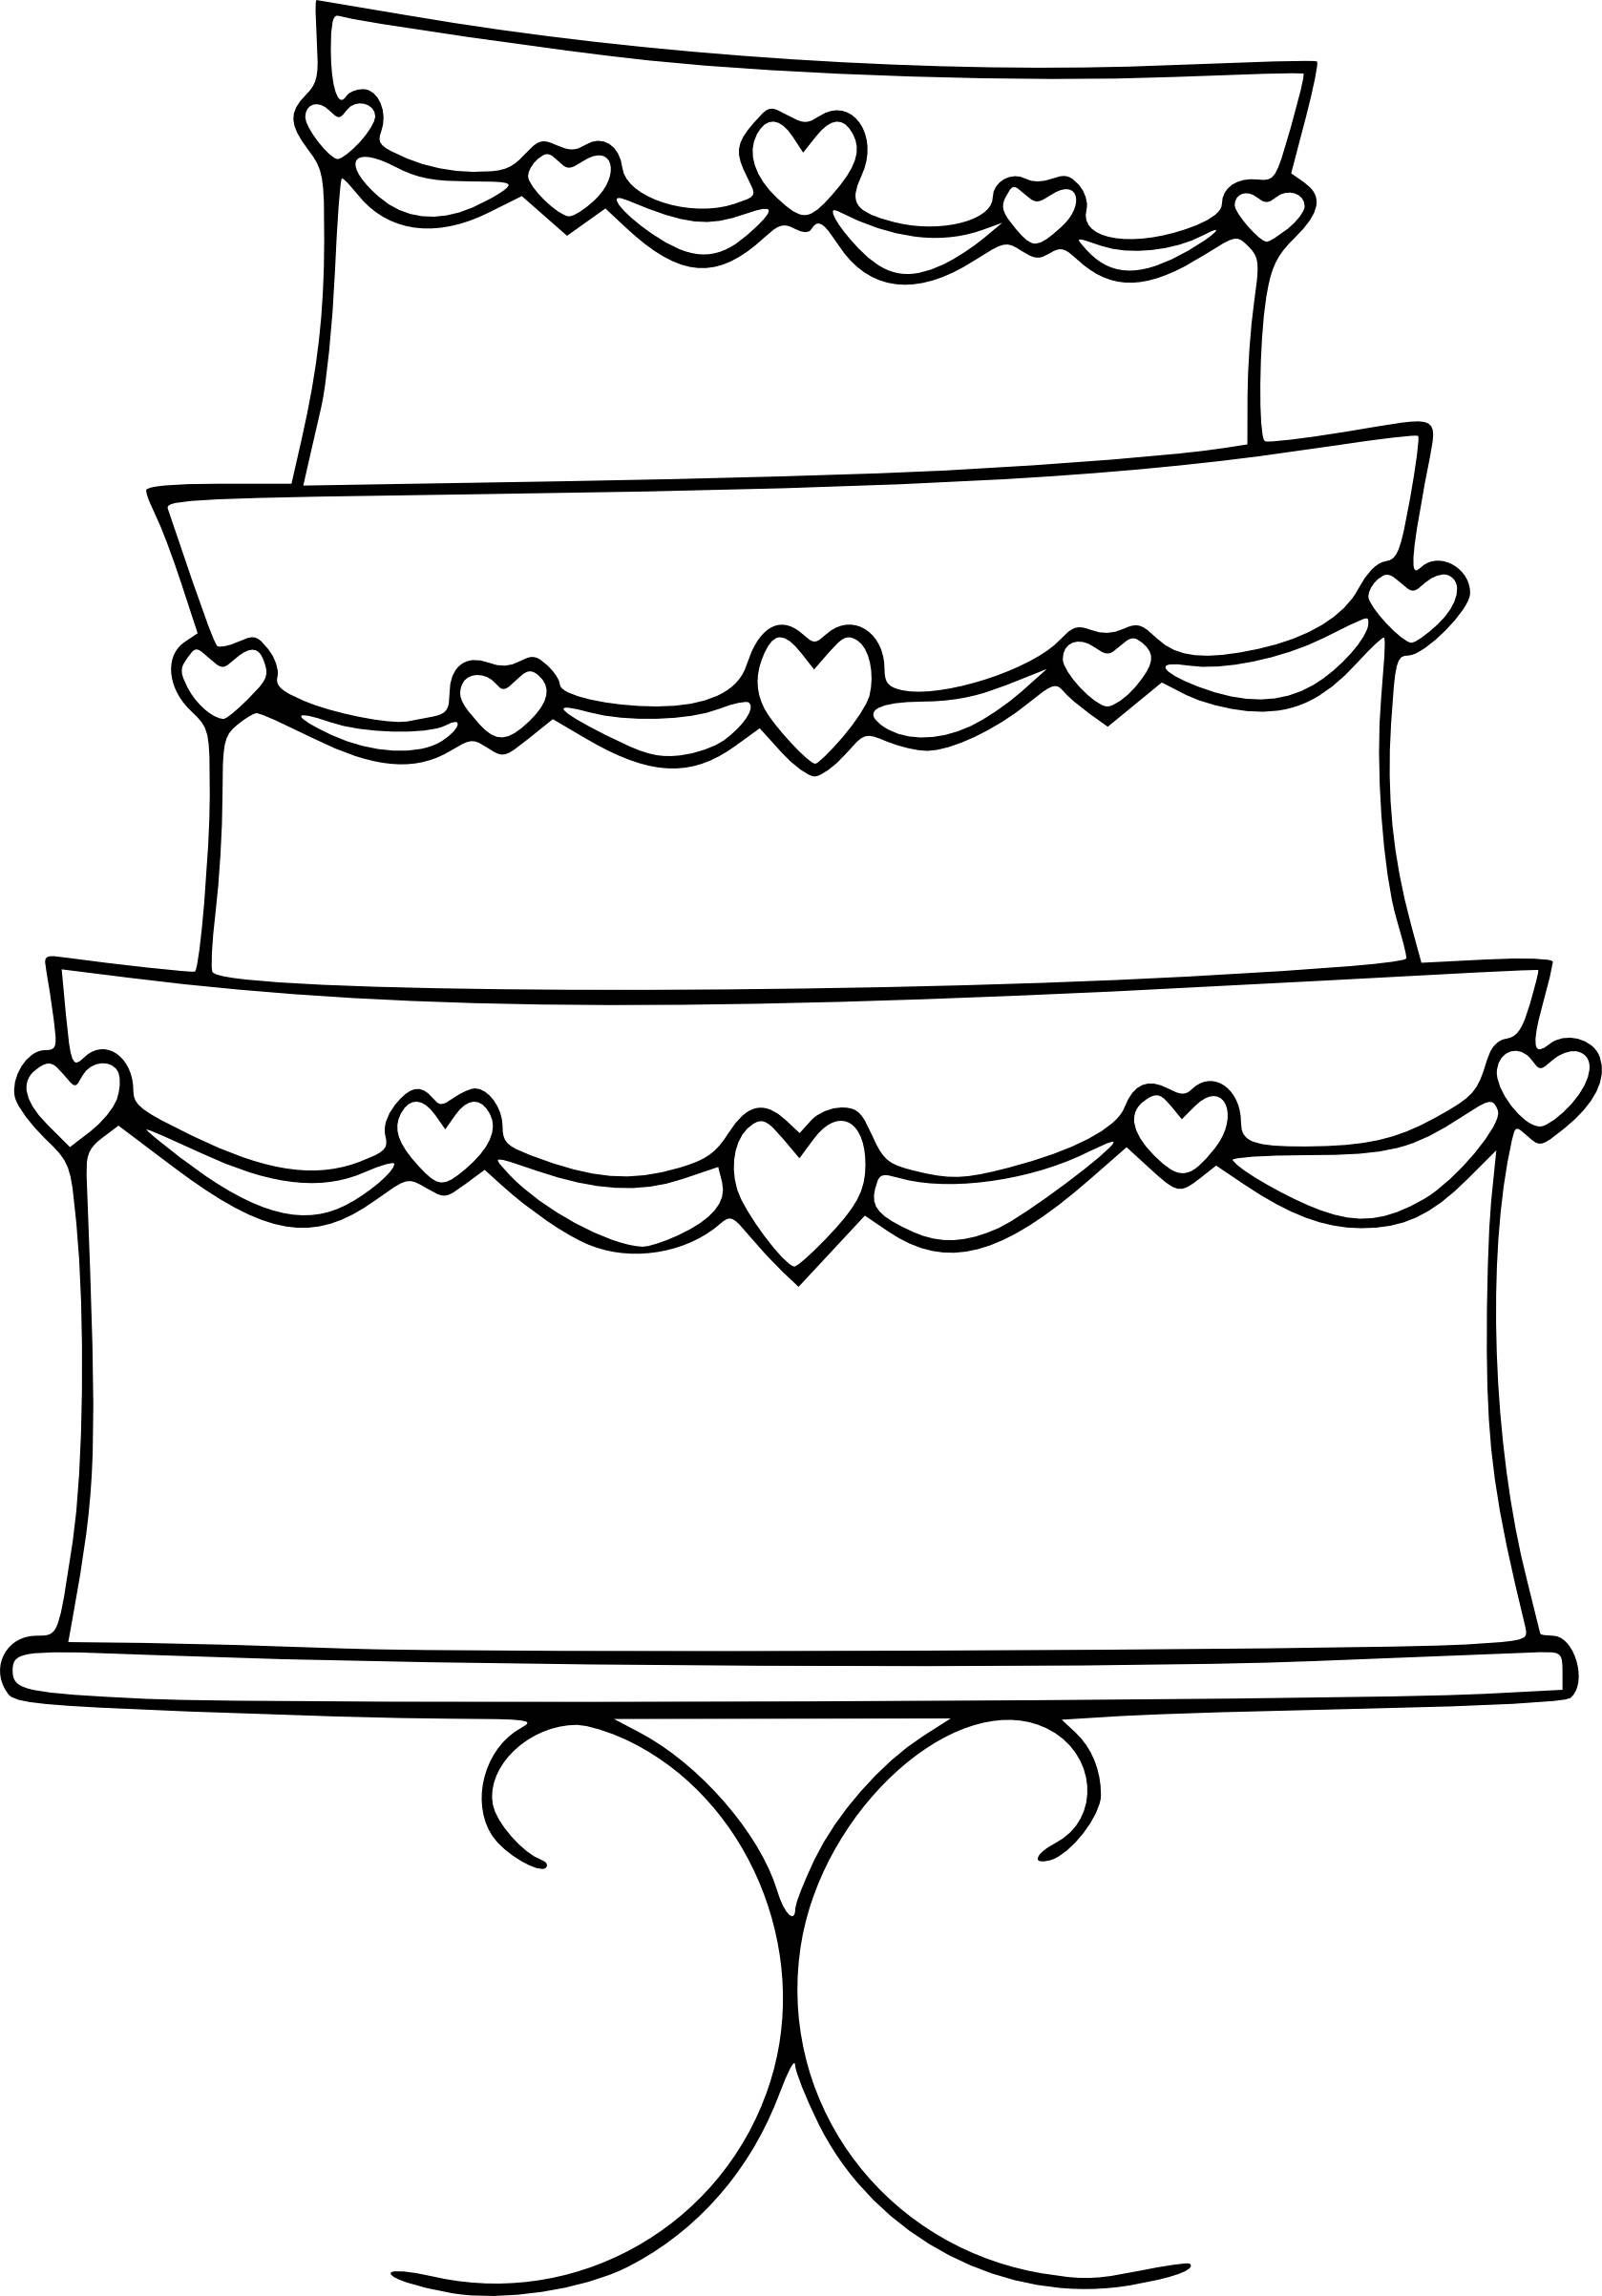 wedding cake color pages free printable 18 of 20 printable icioru